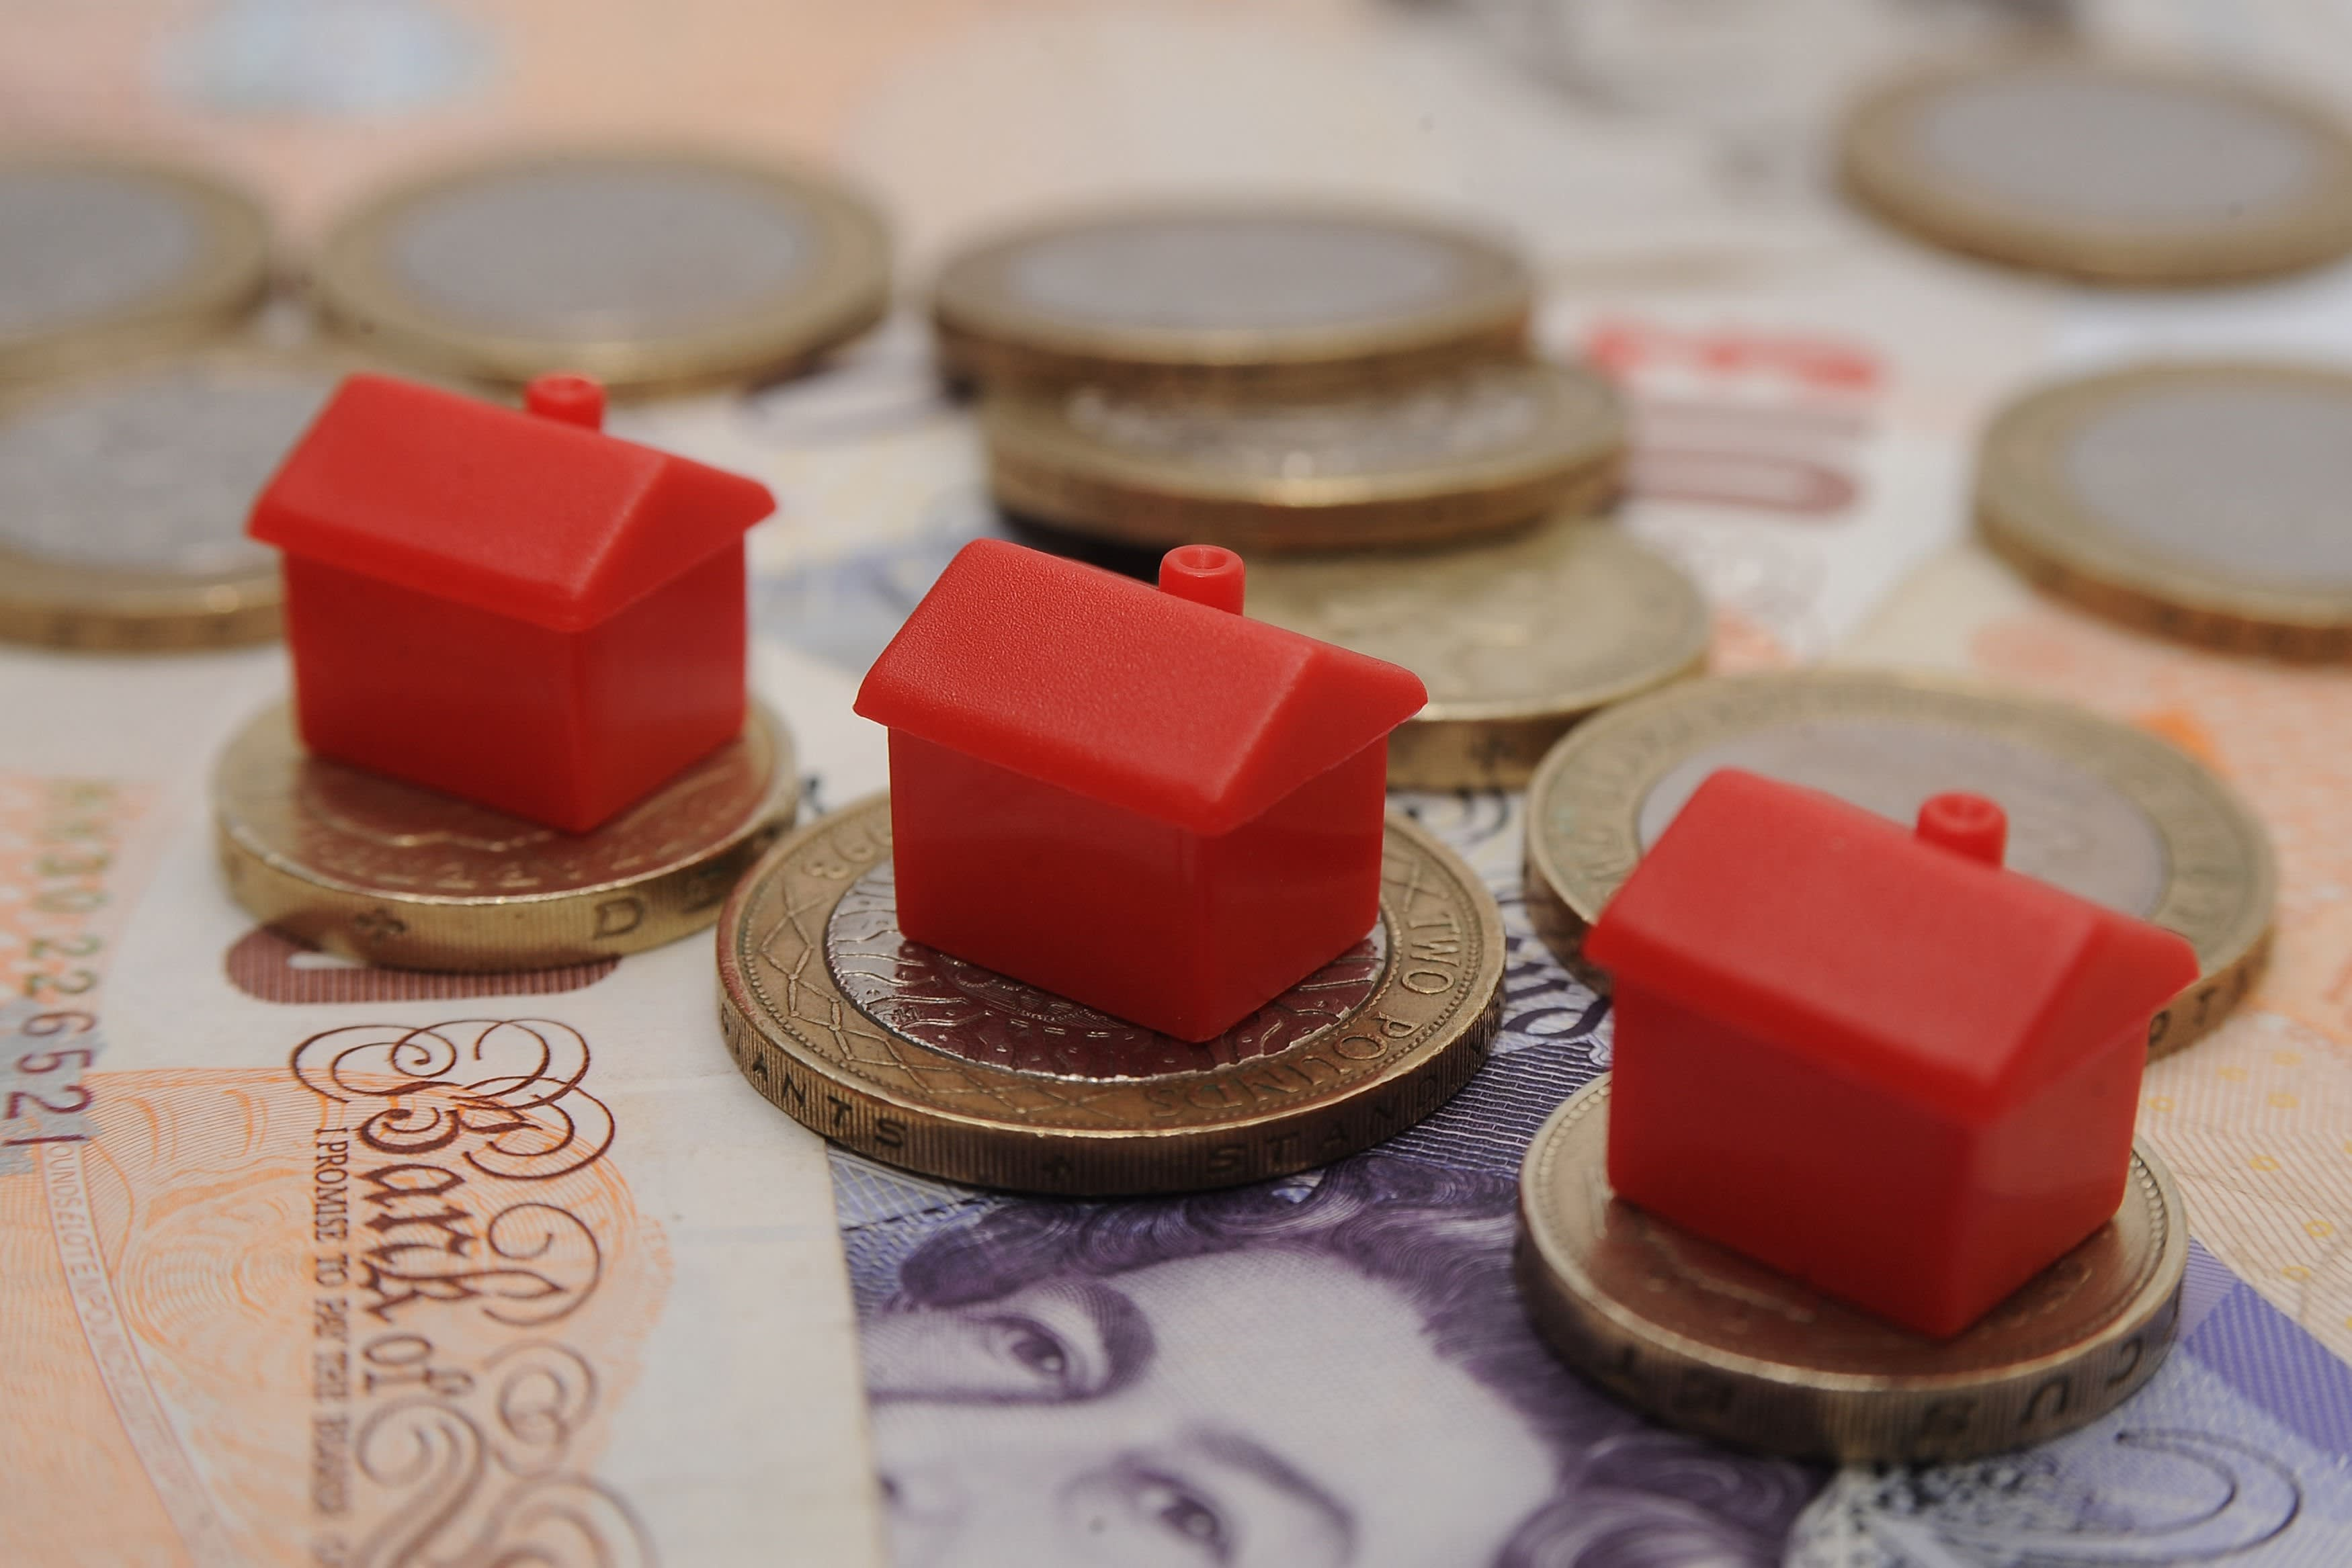 Relaunched house price index shows fall in prices